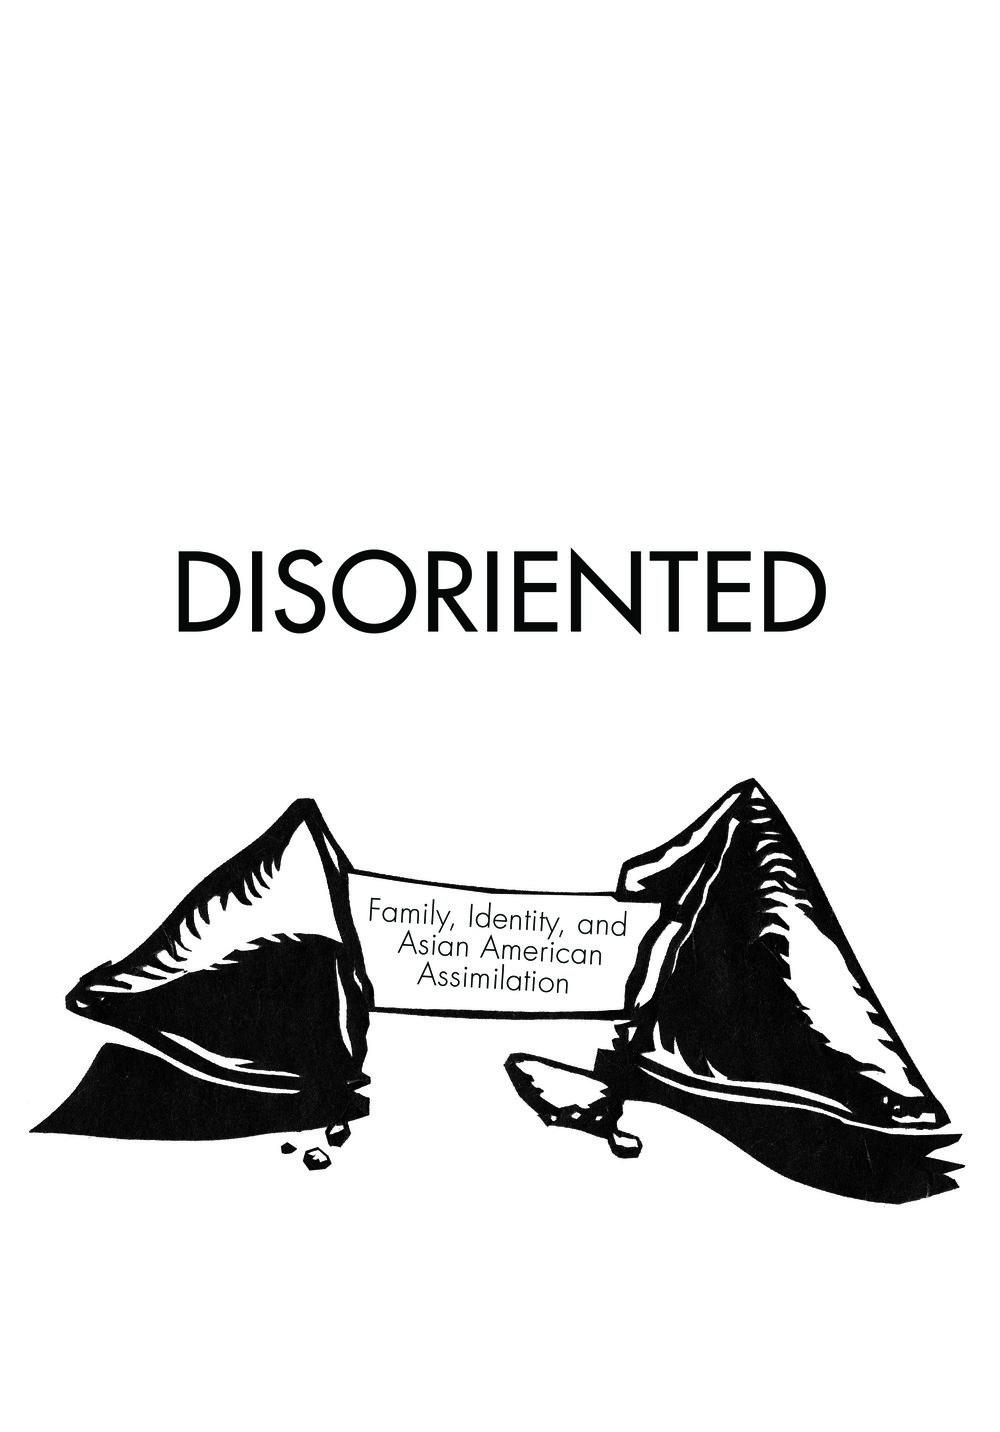 disoriented 1.jpg